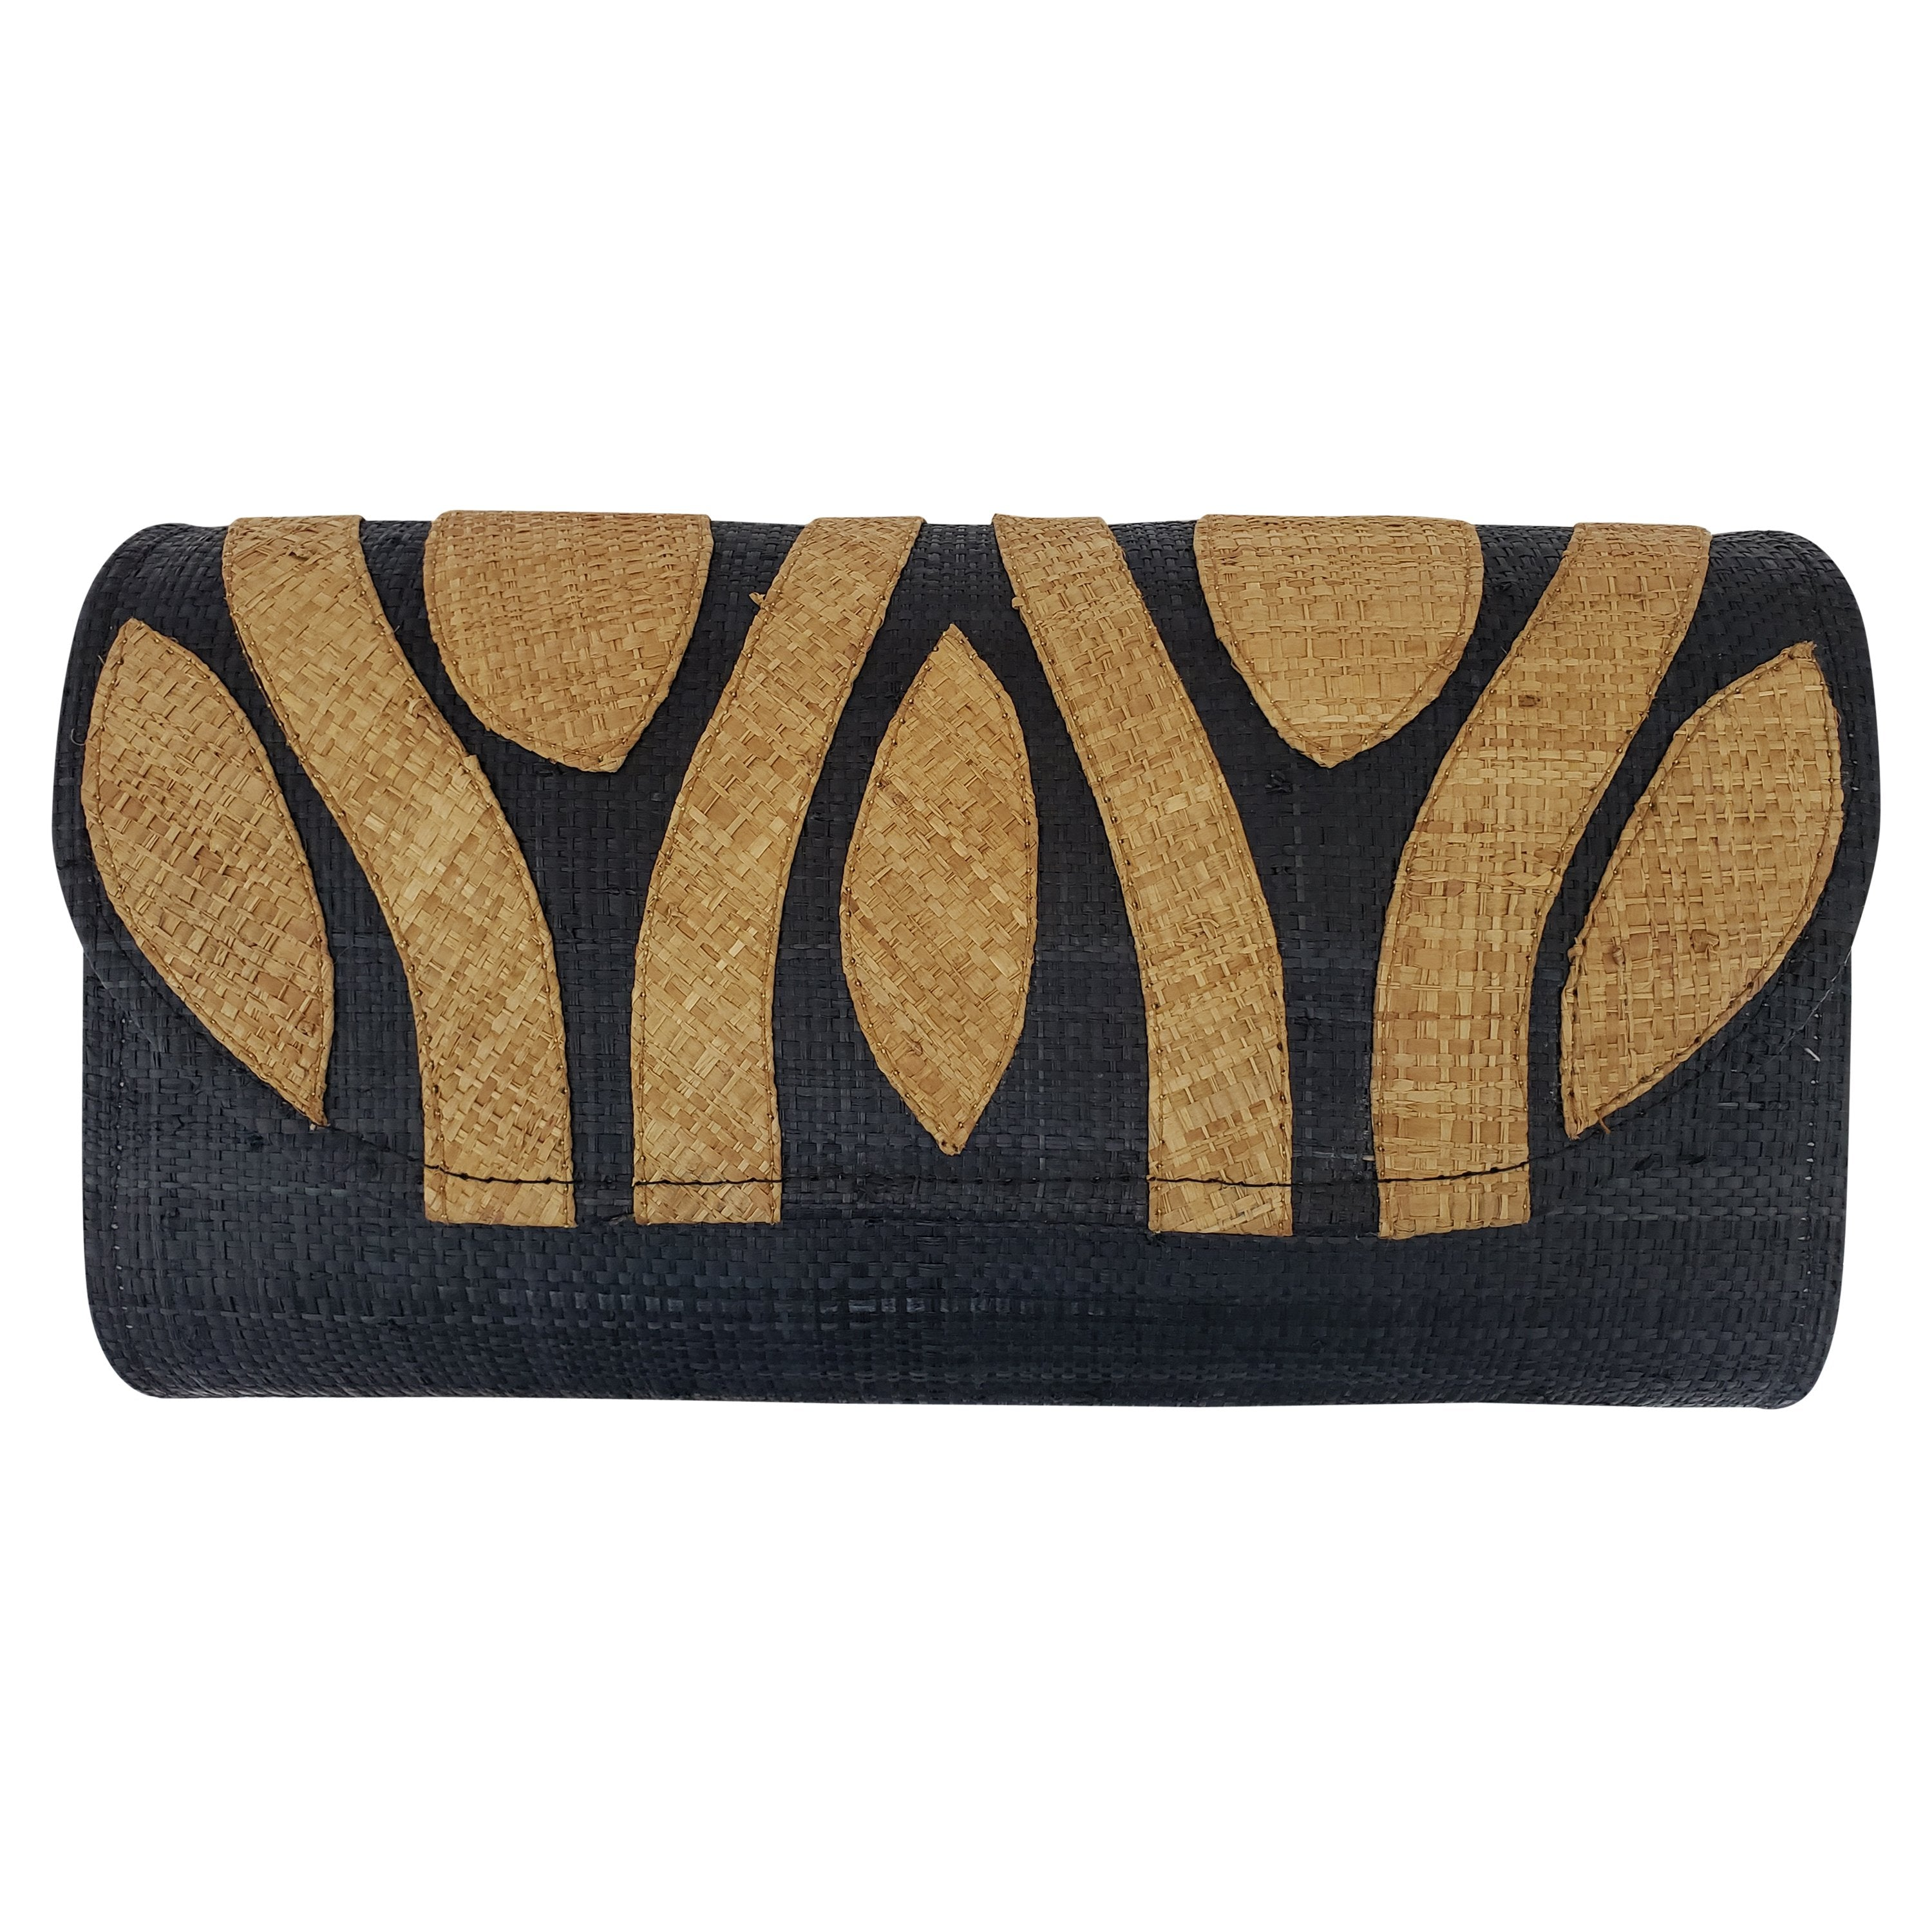 Authentic Handwoven Black Madagascar Raffia Clutch with Brown Accents